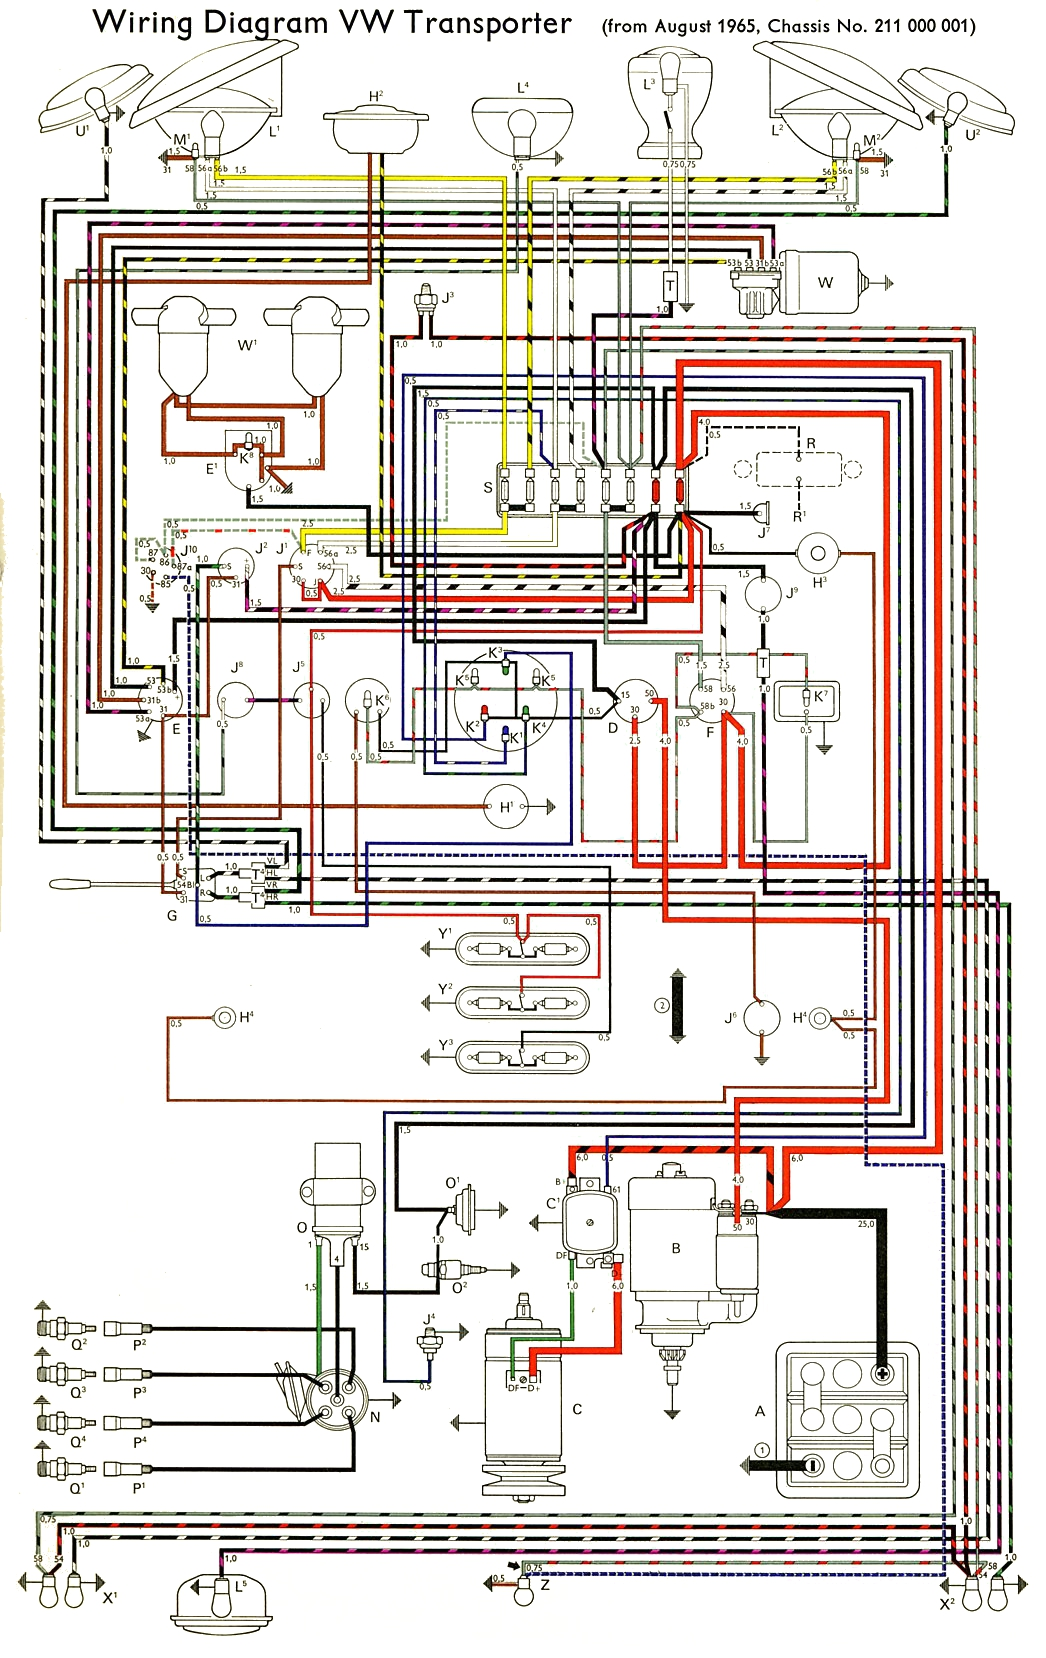 1980 vw vanagon engine diagram wiring library 1985 vw vanagon light switch wiring diagram vanagon #39